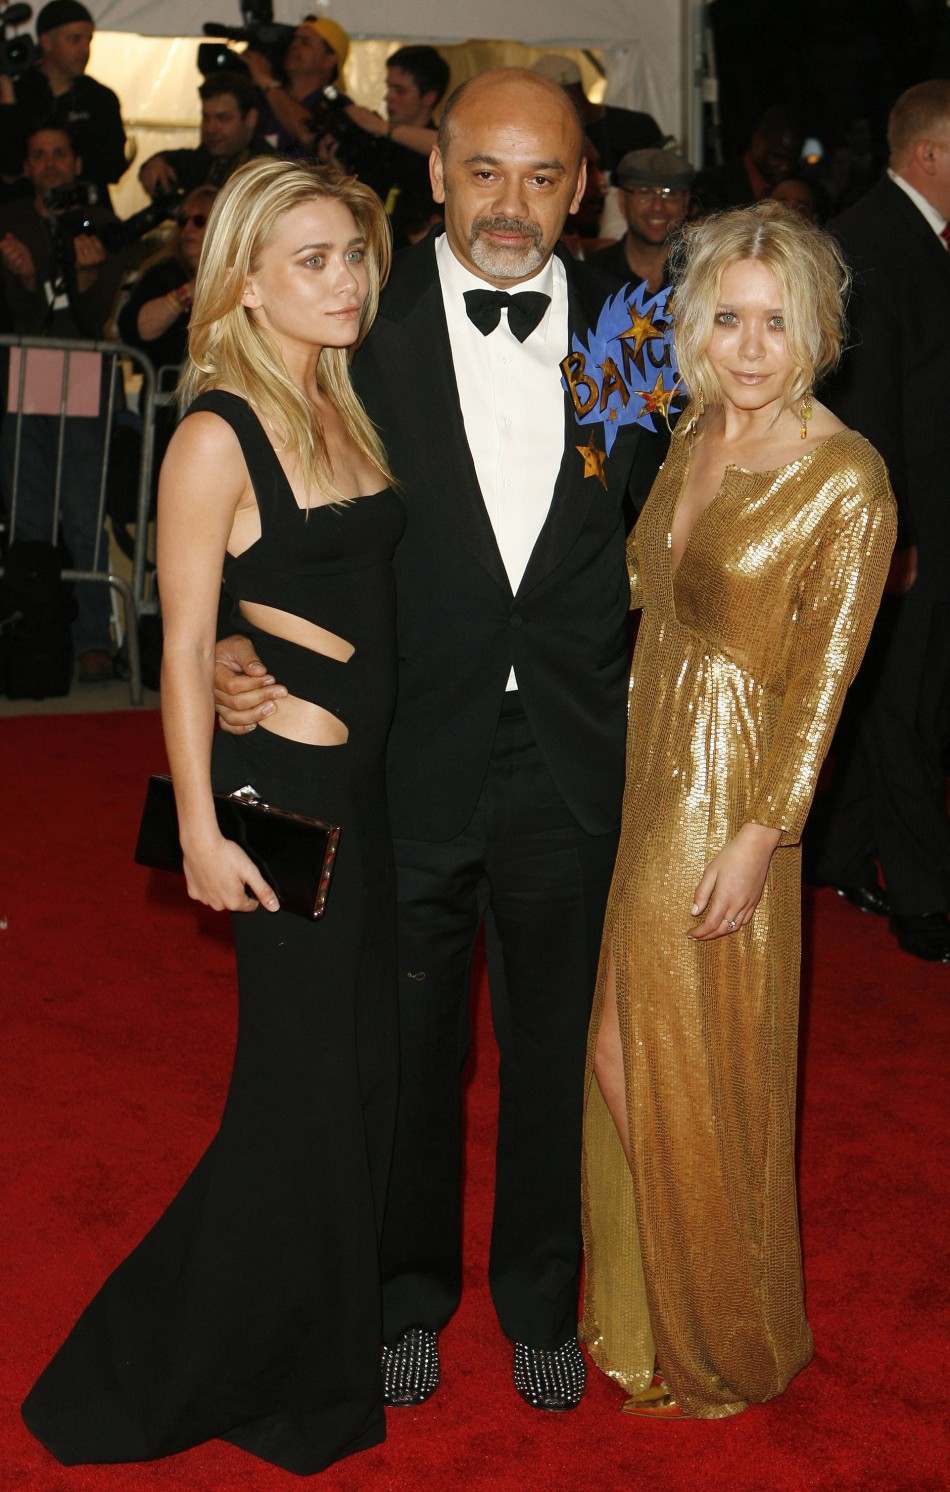 Actress Ashley Olsen, designer Louboutin and actress Mary Kate Olsen arrive for the Metropolitan Museum of Art Costume Institute Gala in New York